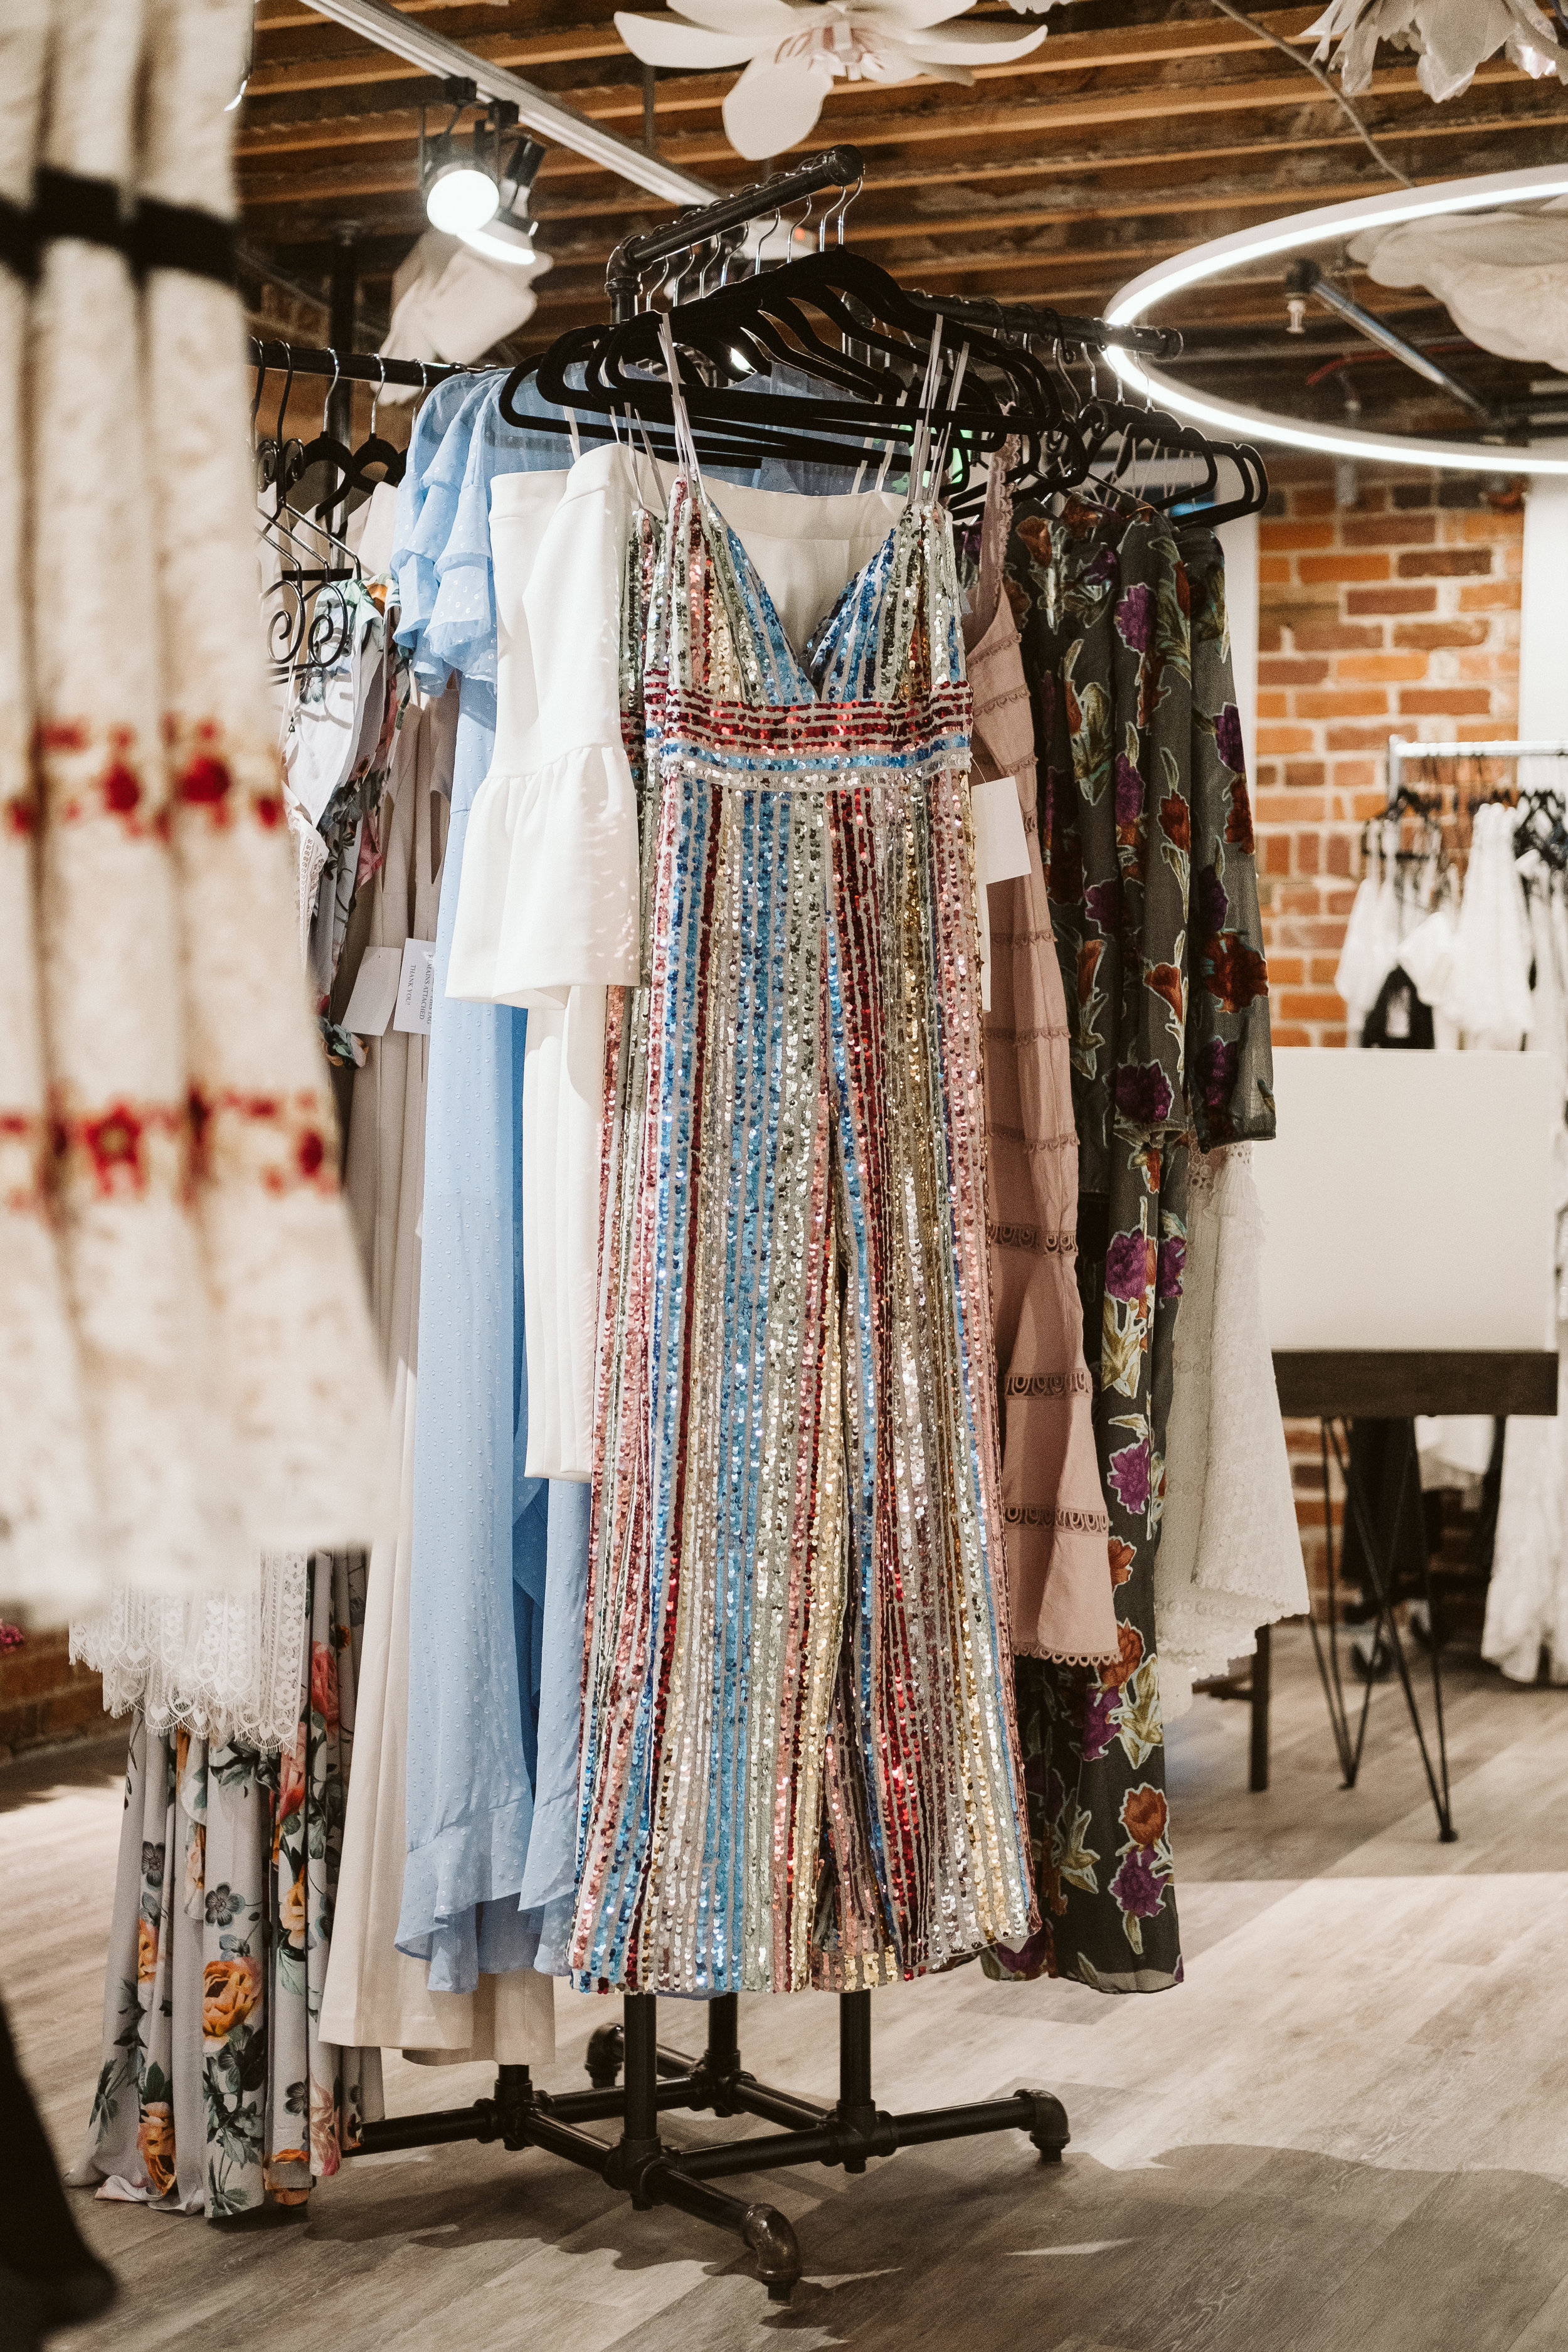 Eden Boutique - Eden Boutique is the only boutique whose sole focus is providing seriously stylish options for all celebrations, with a special focus on those surrounding the wedding. Eden is located in the garden level of Little White Dress Bridal Shop.